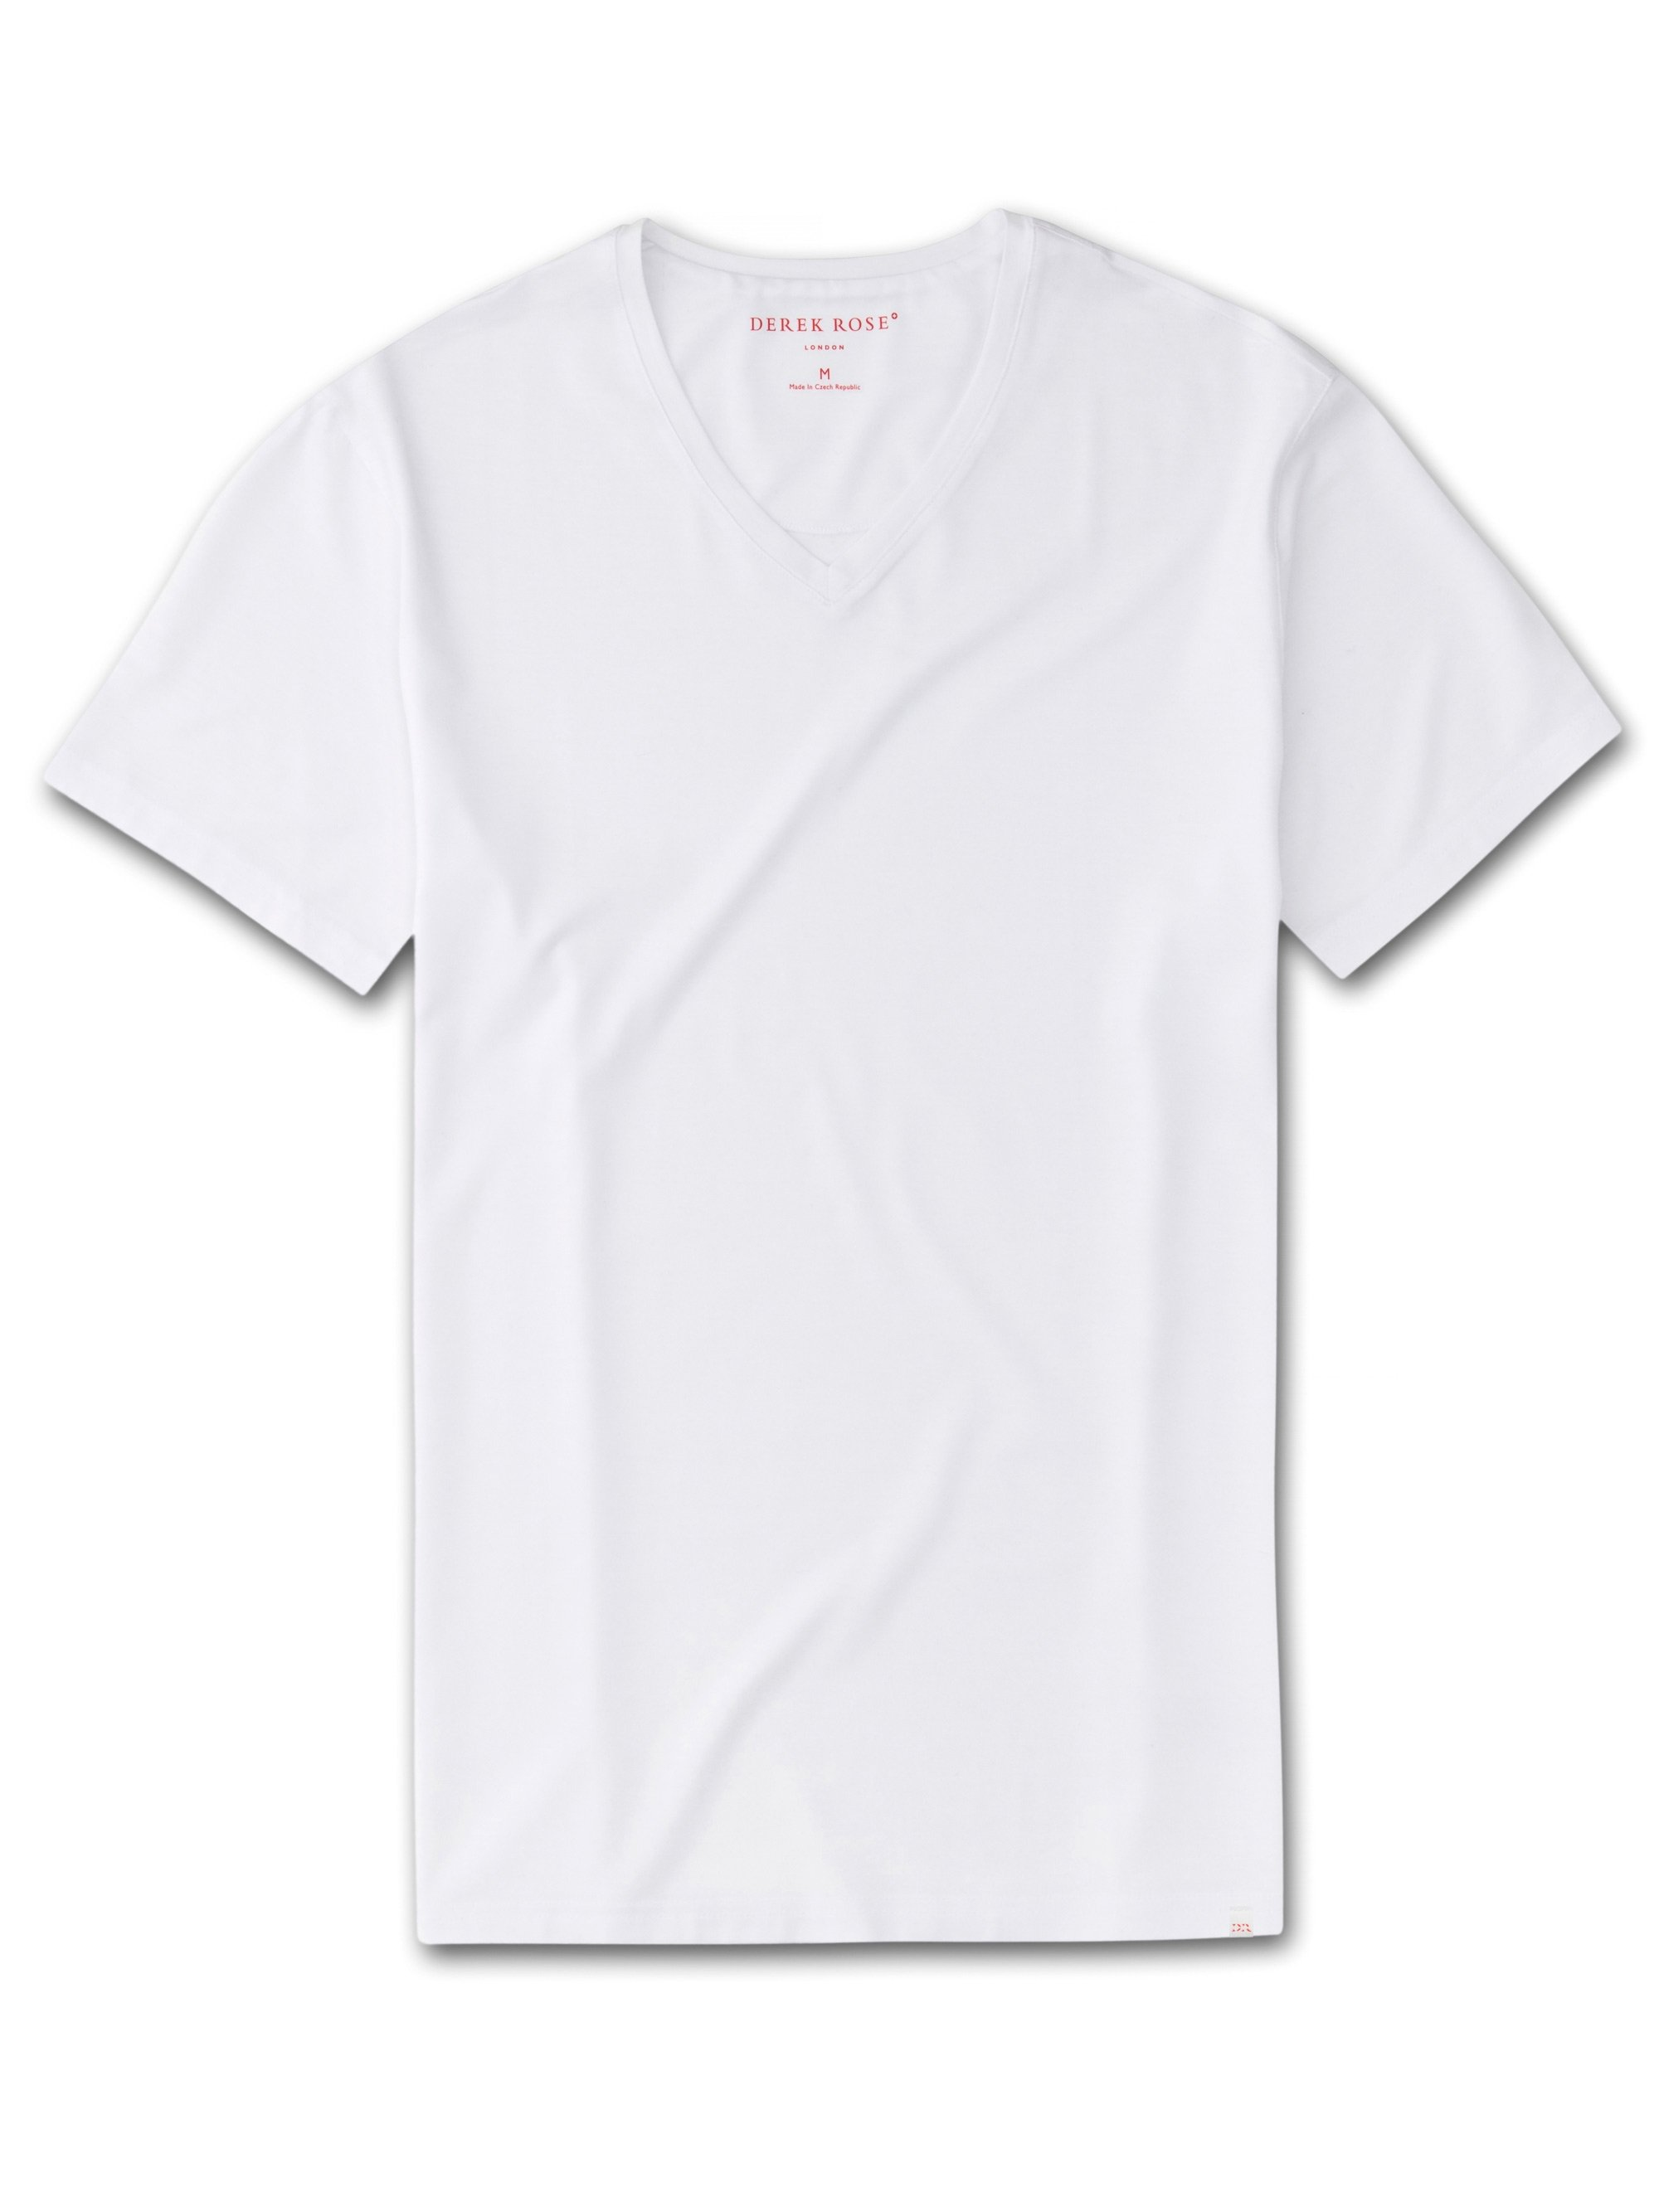 Men's Short Sleeve V-Neck T-Shirt Basel Micro Modal Stretch White